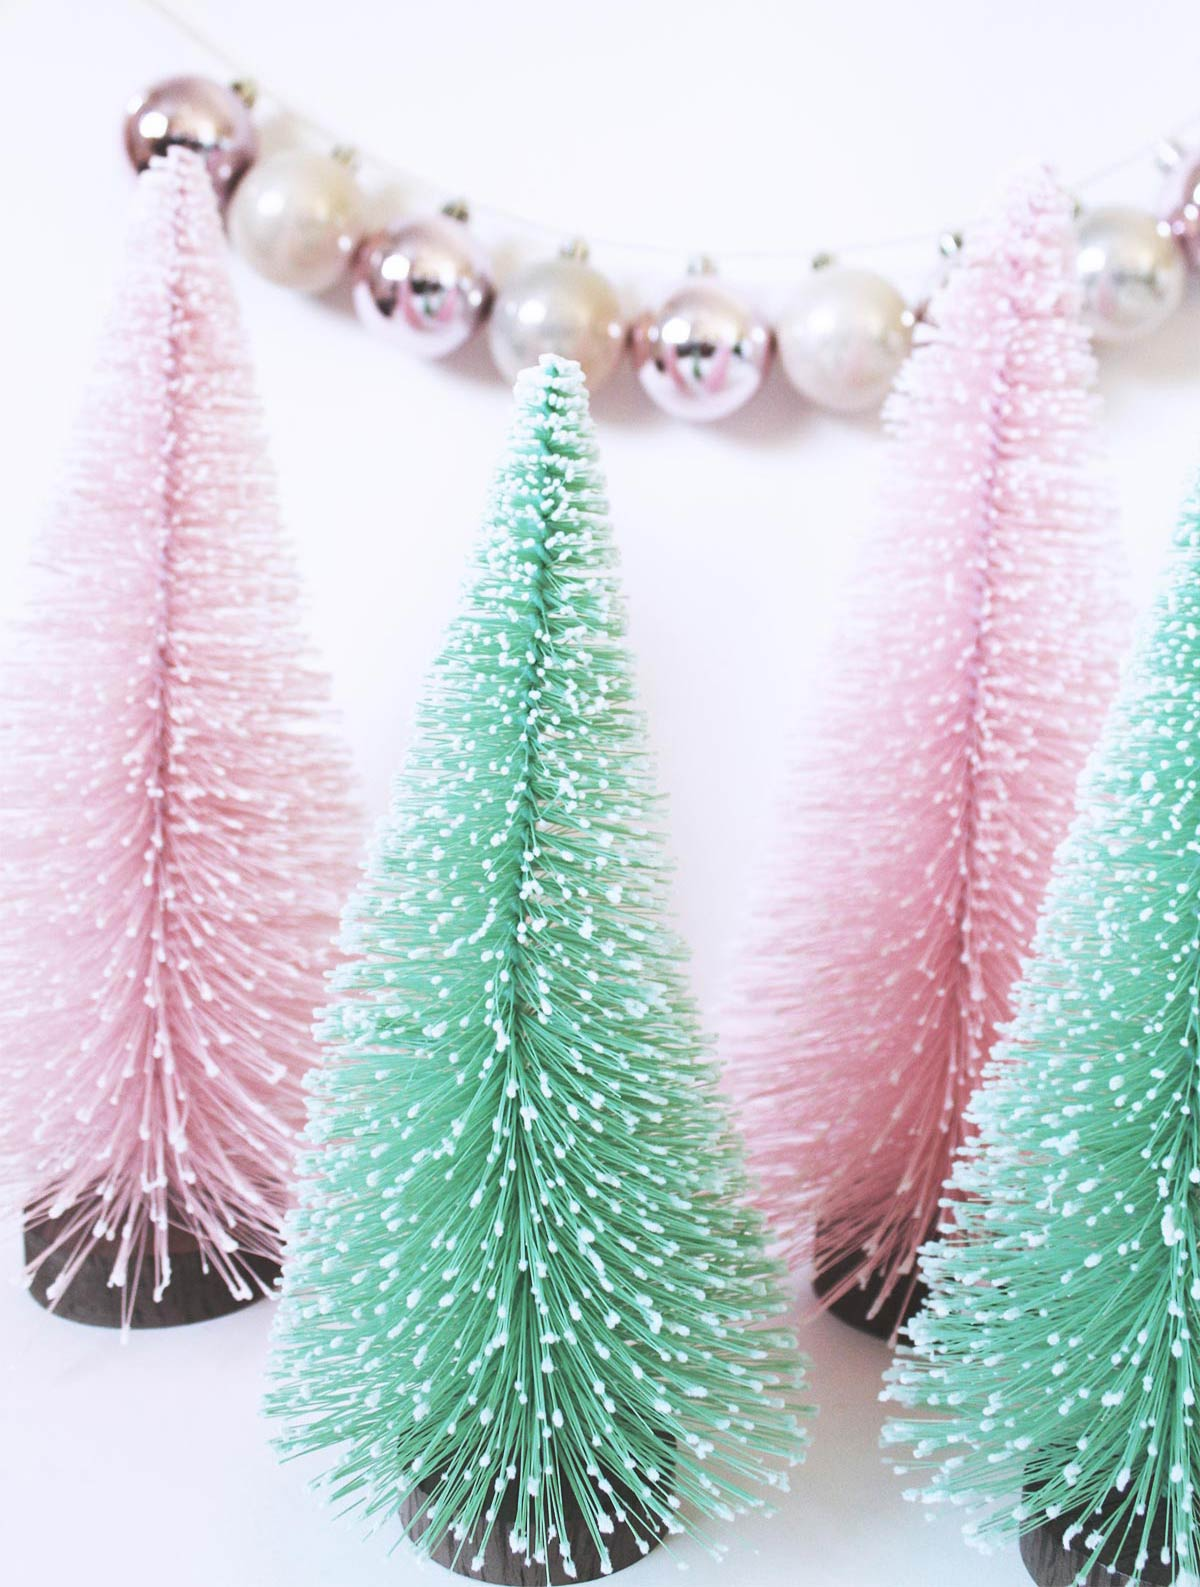 Dreaming of a pastel Christmas